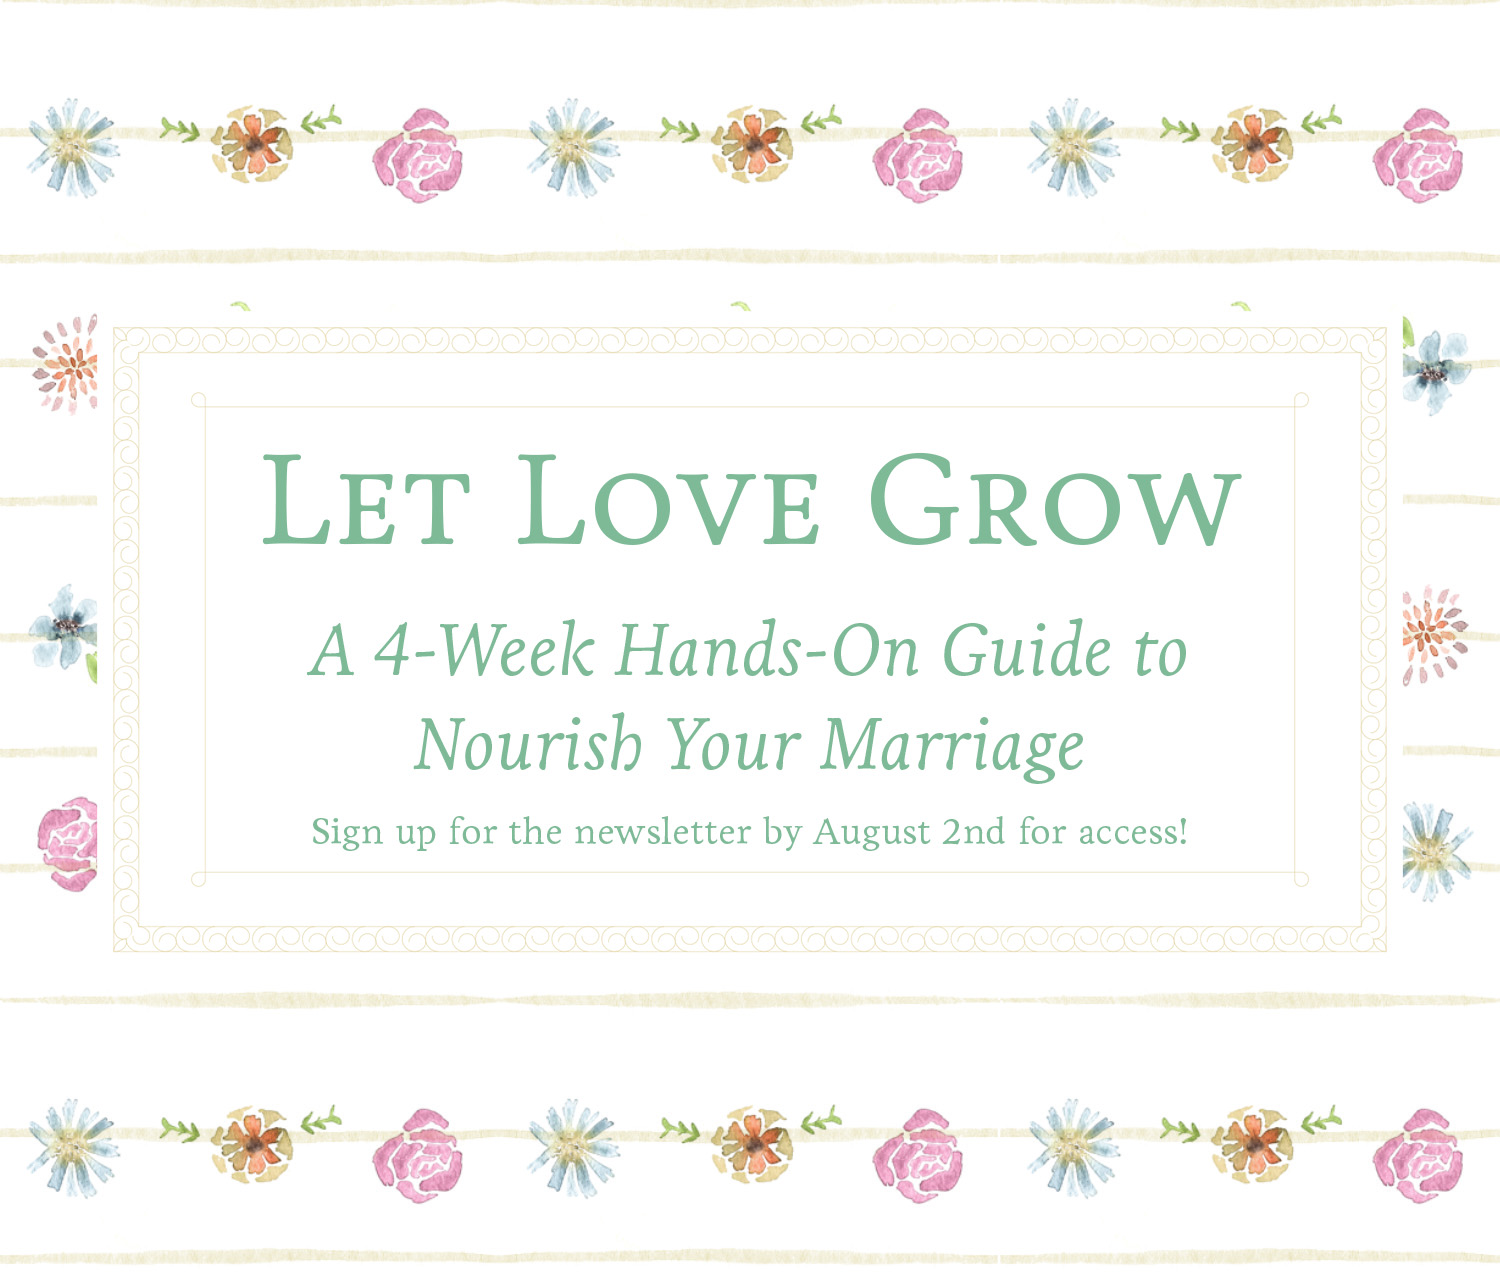 Let Love Grow: Gardening & Marriage